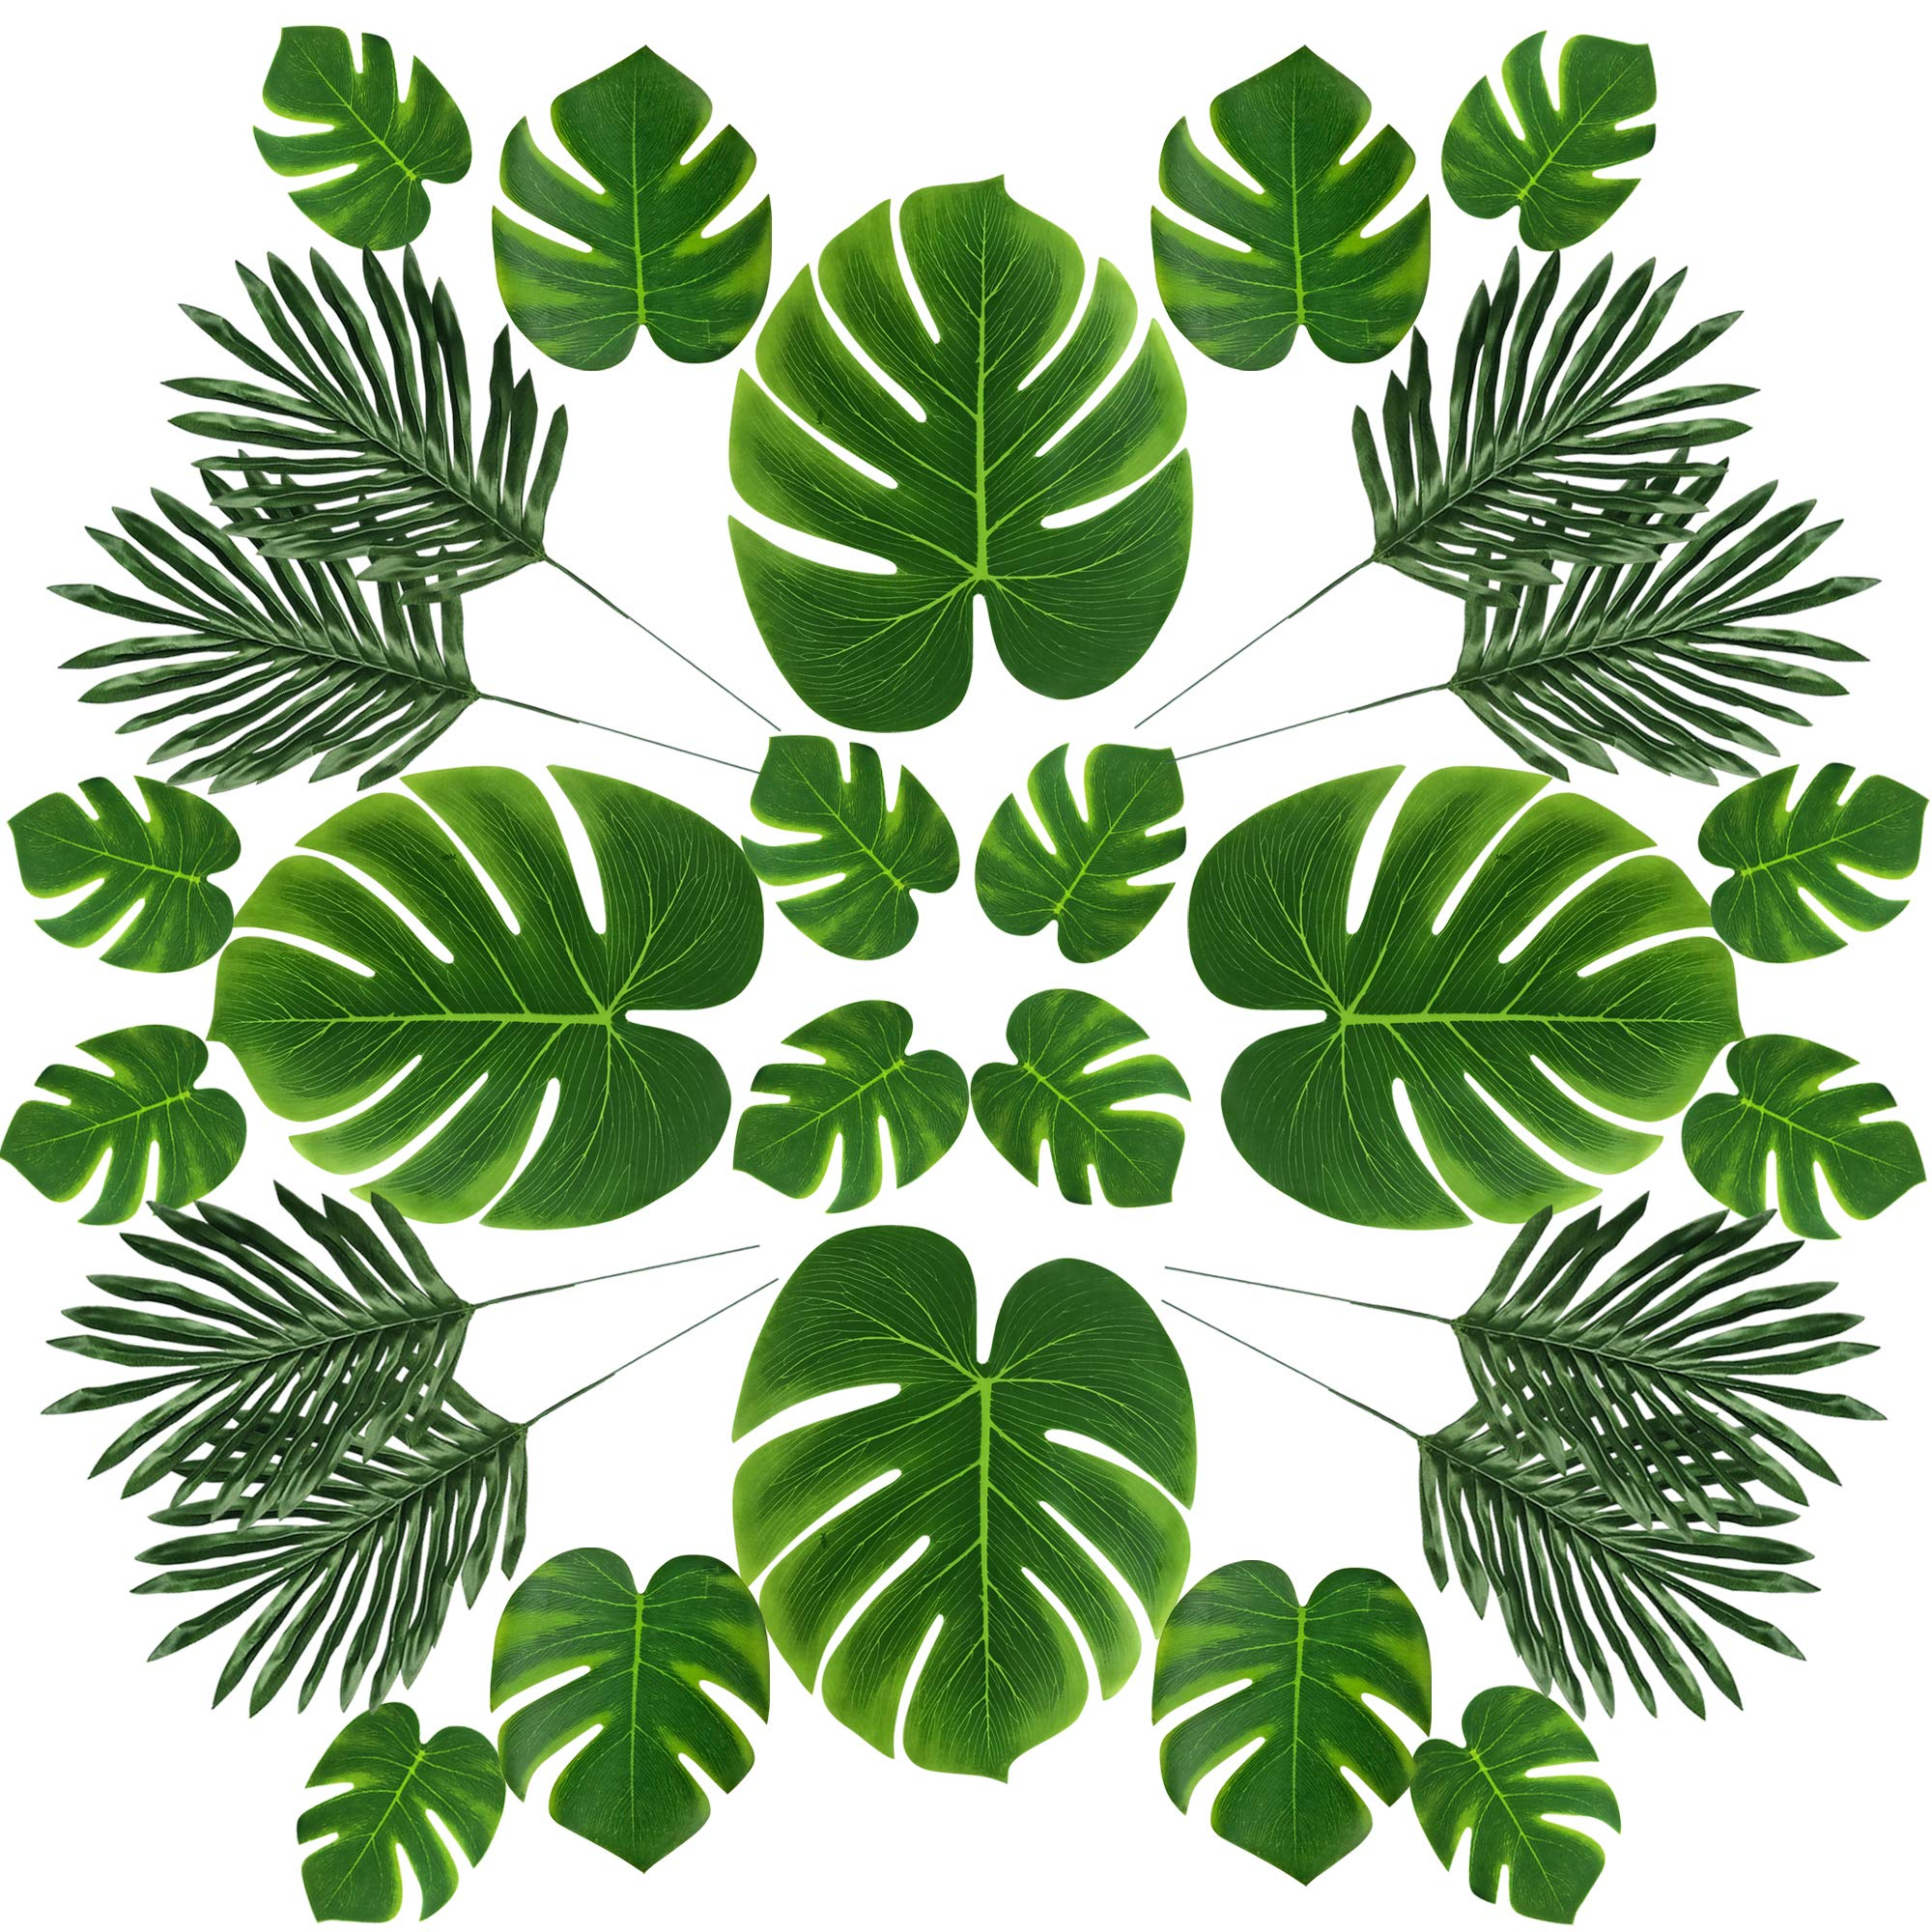 LEAFBABY 48 PCS 2 Kinds 4 Sizes Artificial Fake Lifelike Simulation Tropical Palm Leaves for Home Kitchen Party Decorations